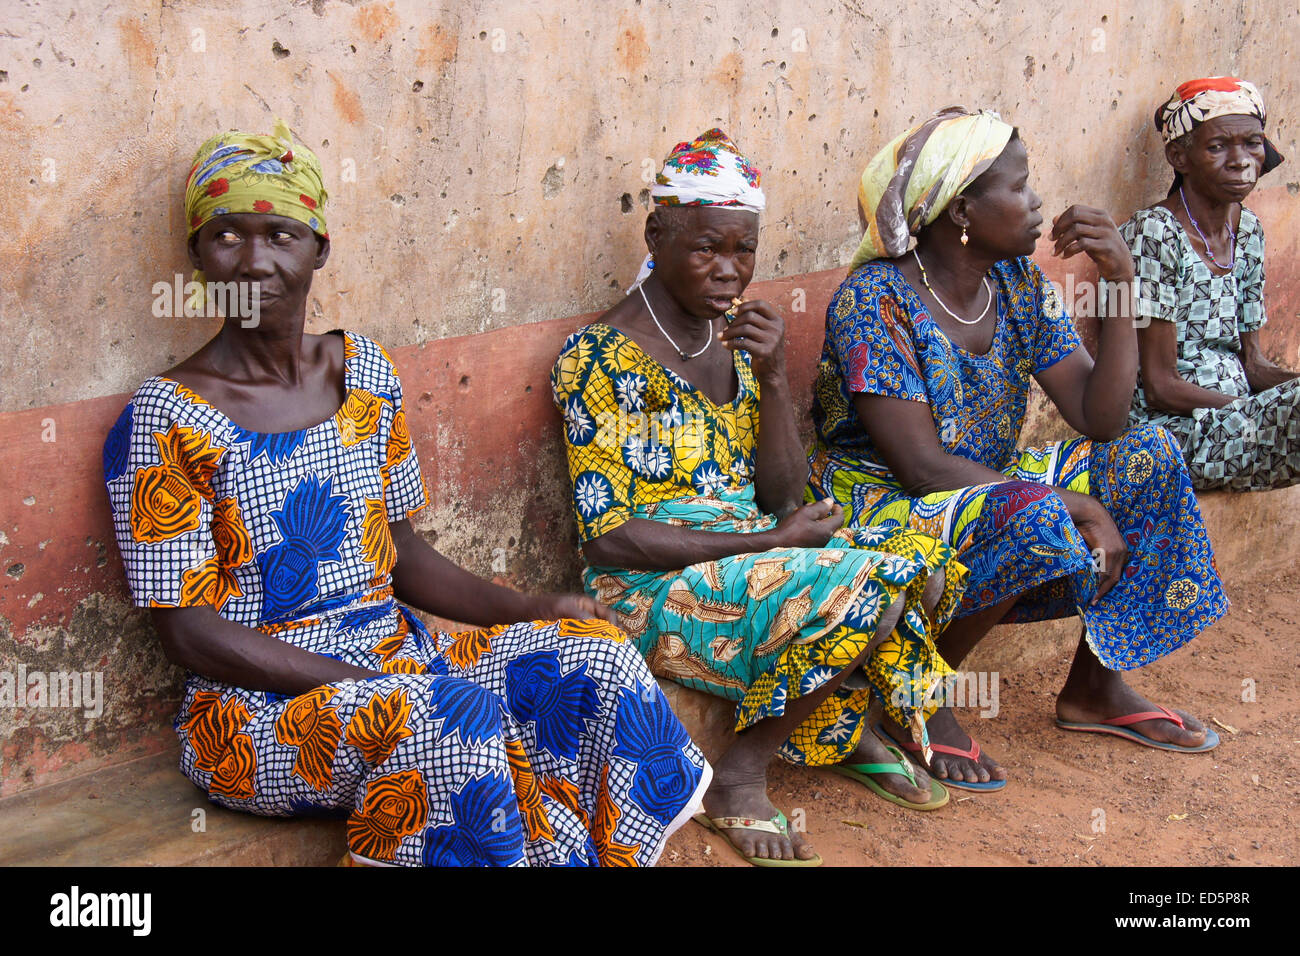 women of ghana Was it written by a man or woman  ghana scammer photos home / tag: ghana  fraud abdullah investment consulting accra africa dating scammer dating scams facebook female fl fraudster ghana romance scams ghana scammer photos ghana scammers ghana scams men dating scammers men romance scammers new york nigerian scammers nigeria scams ny.